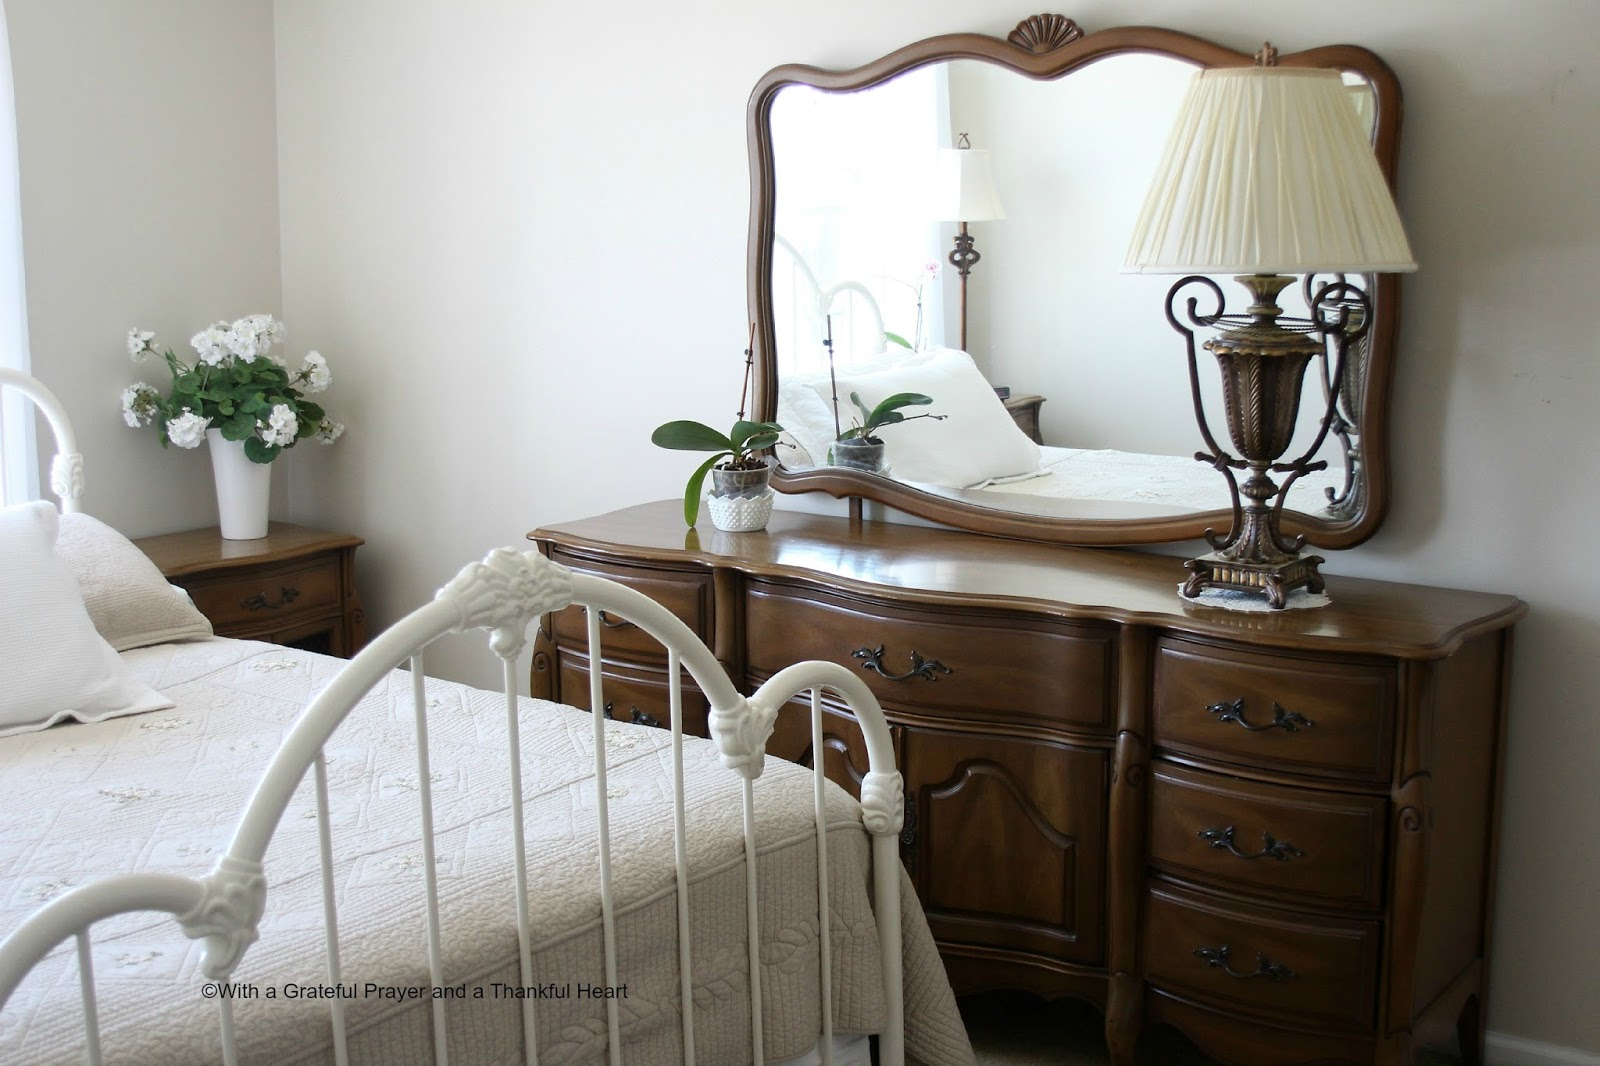 With a Grateful Prayer and a Thankful Heart Vintage French Provincial Bedroo